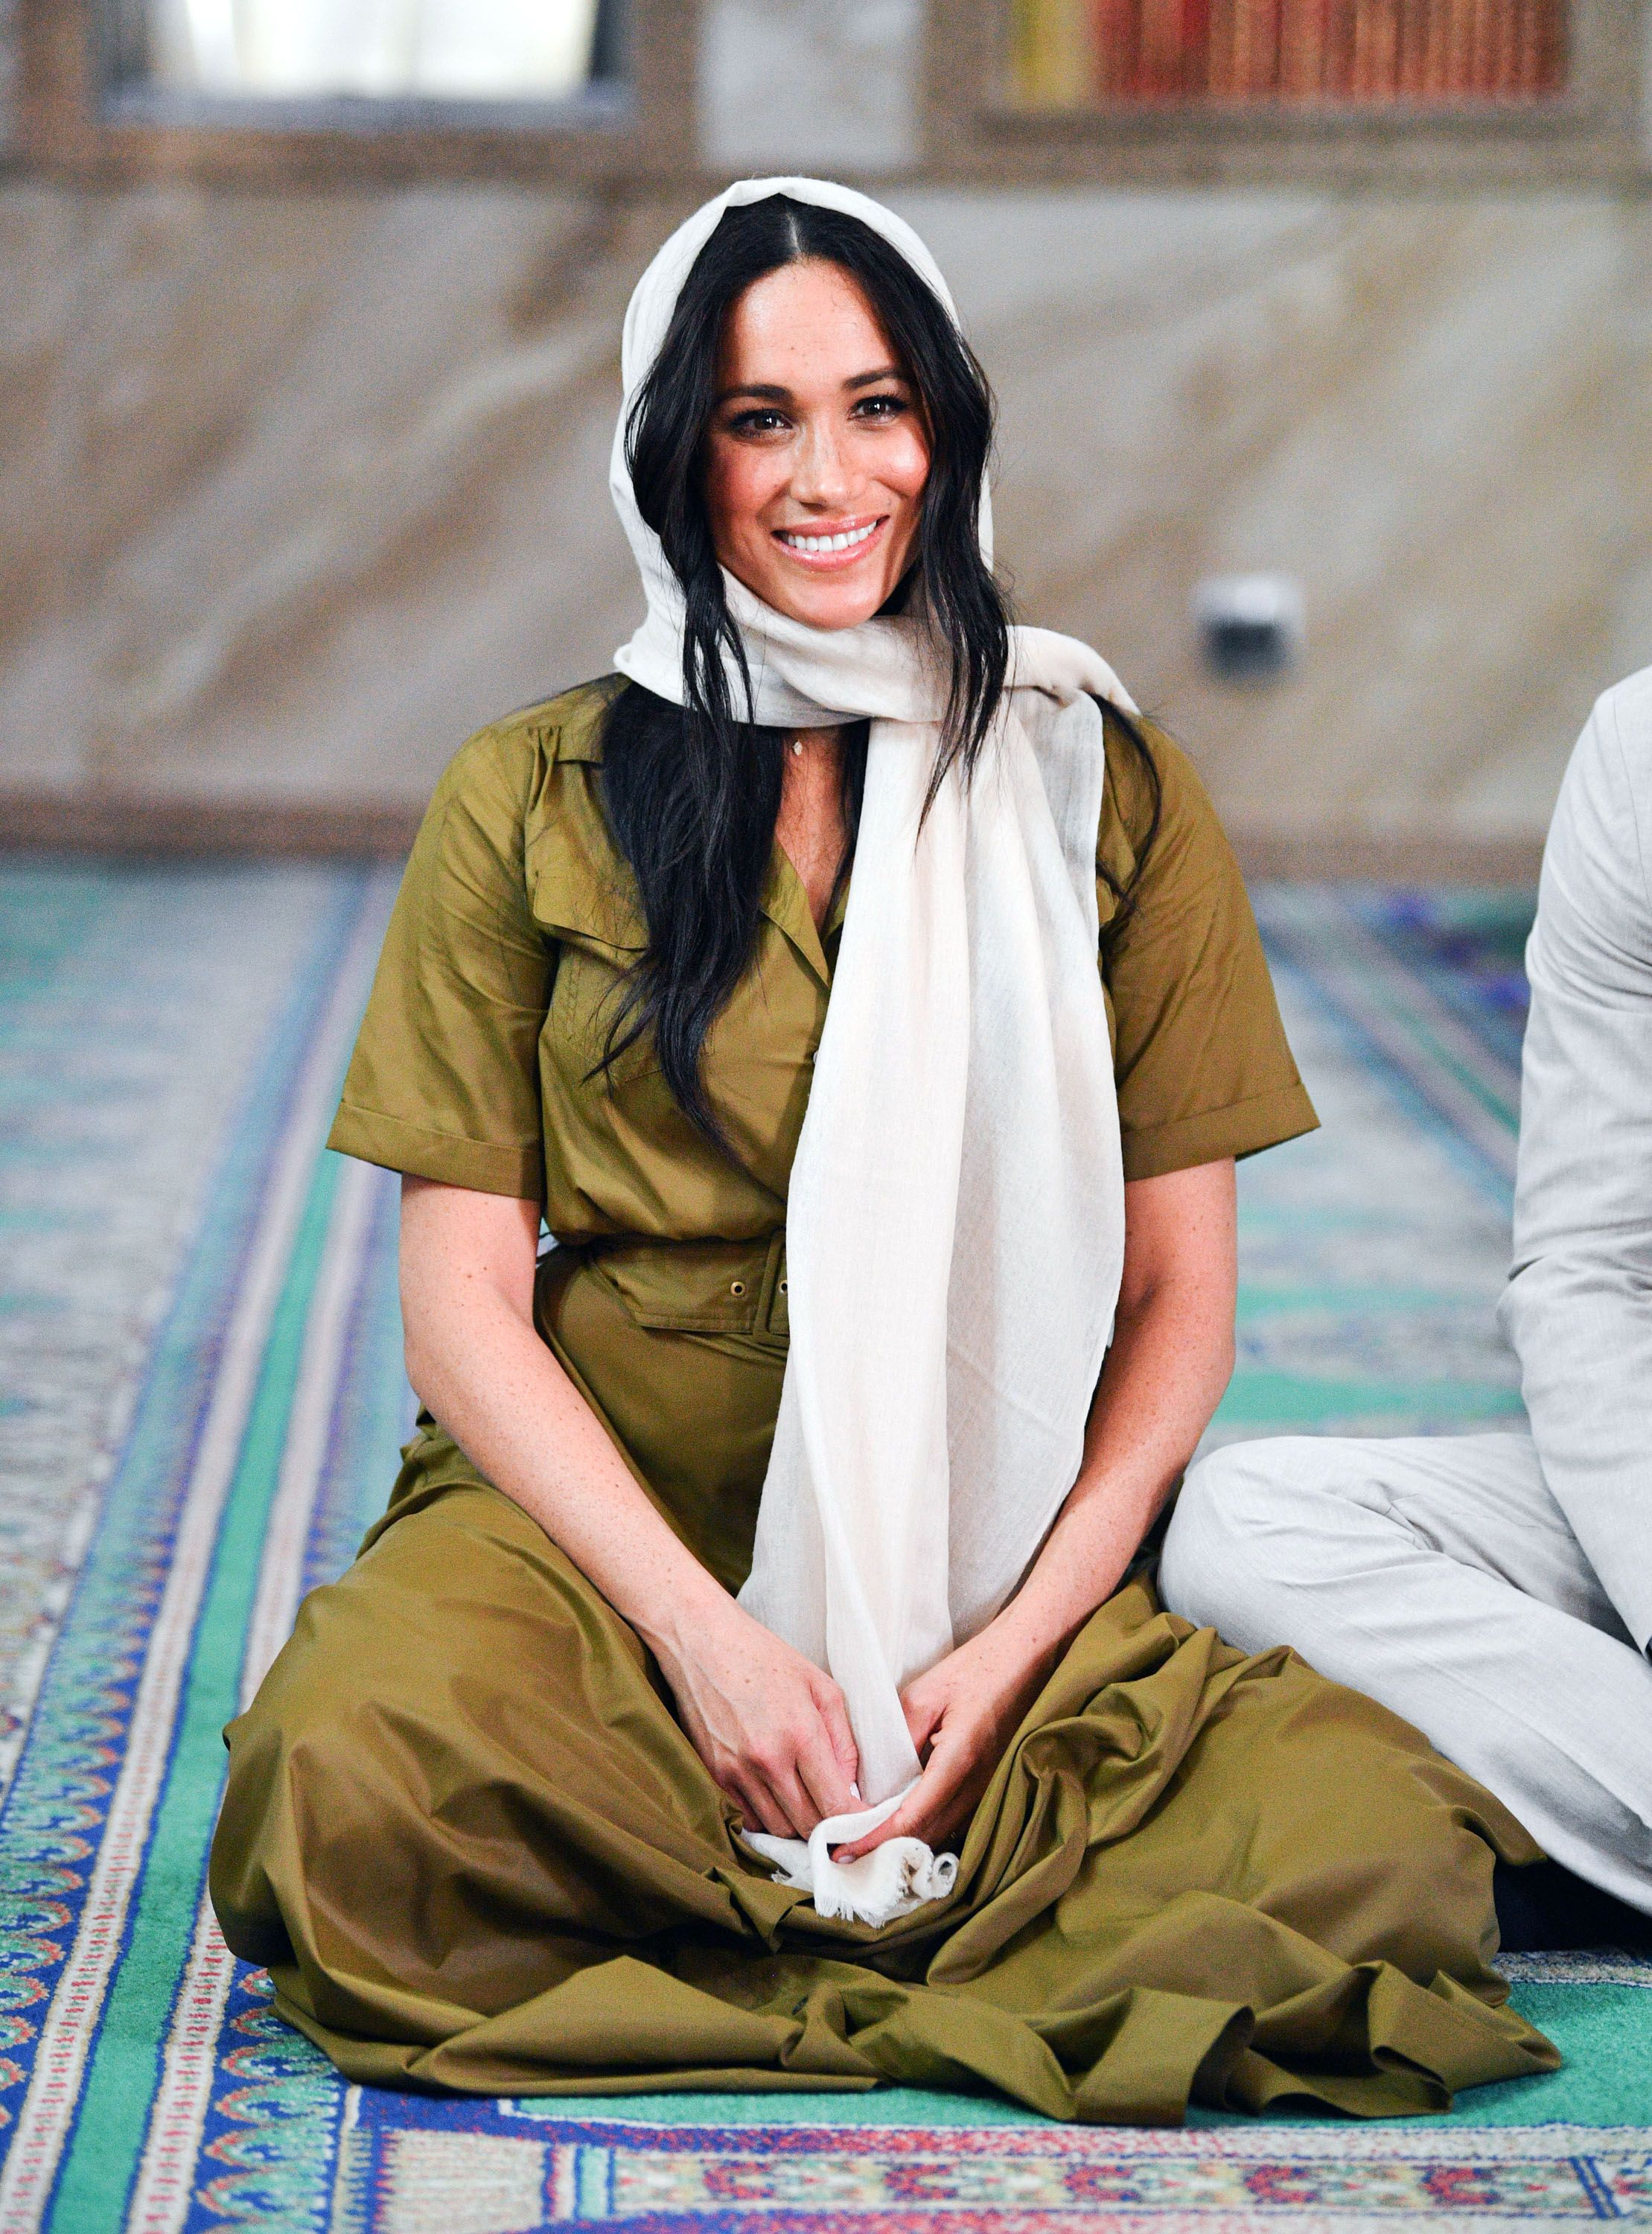 Meghan Markle Sent a Meaningful Message about Sustainable Fashion on Her Royal Tour of Africa